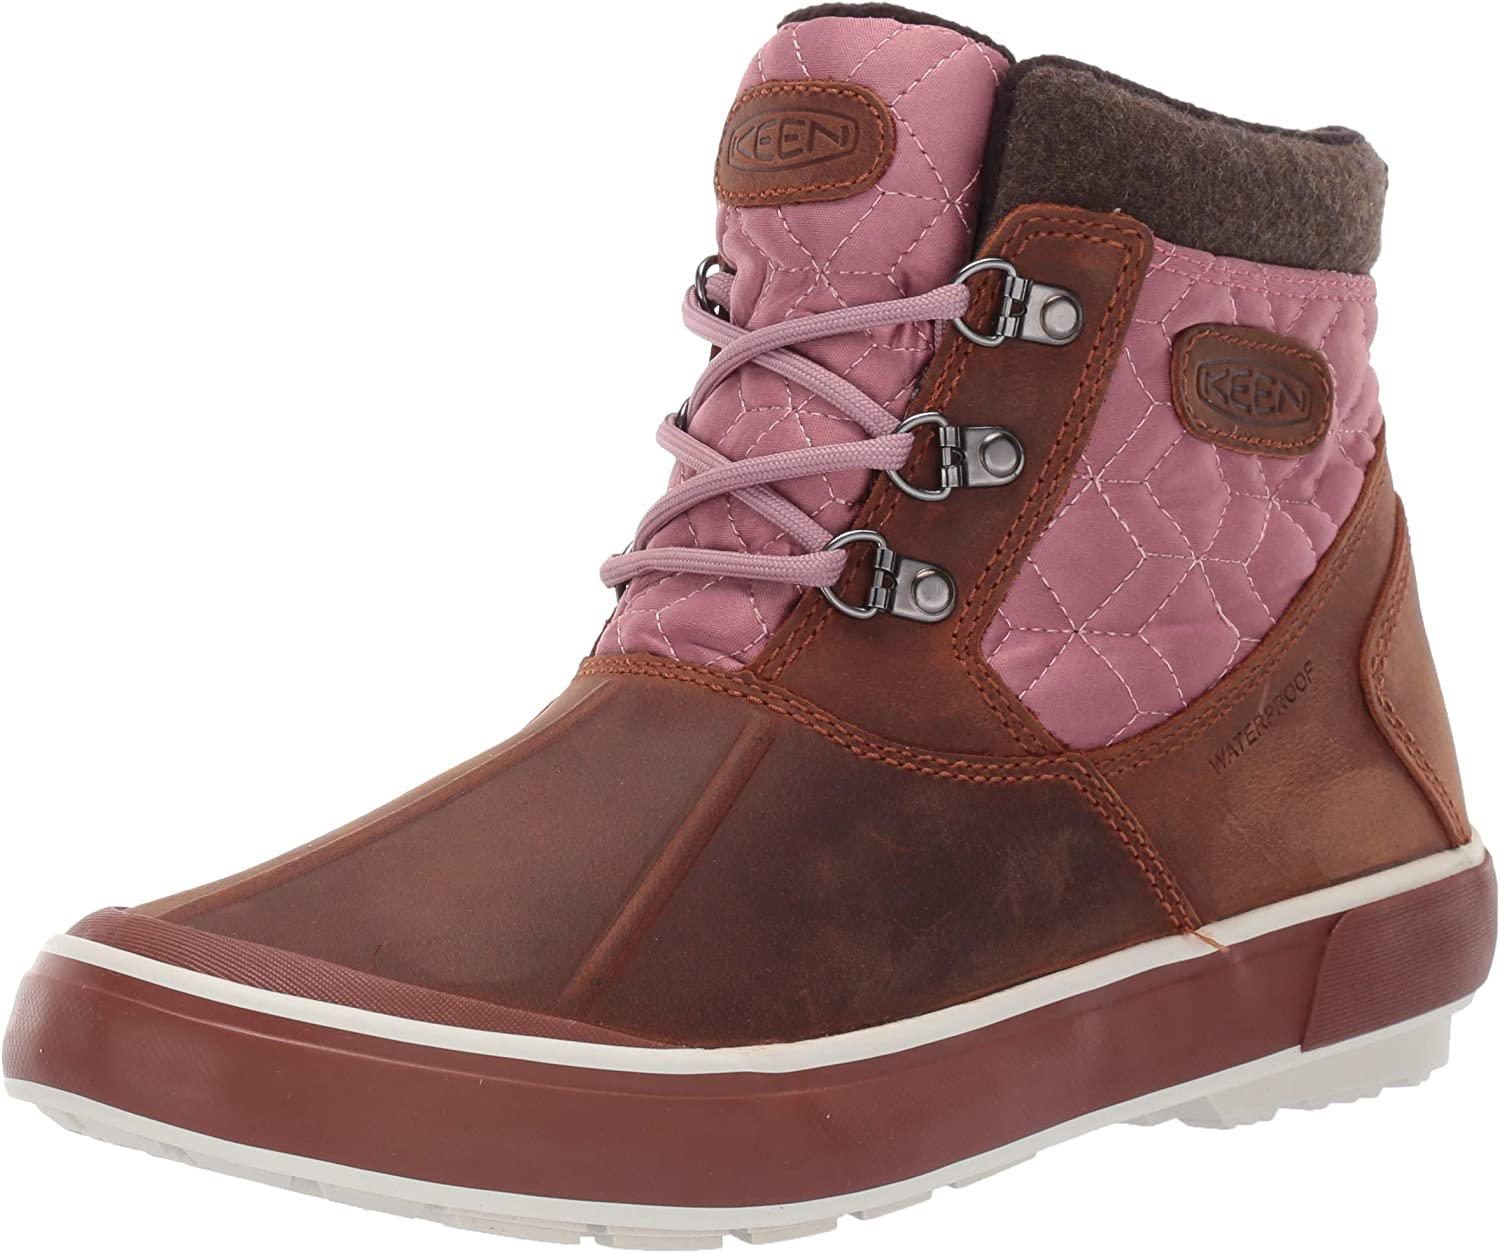 KEEN Women's Elsa II Ankle Quilted WP